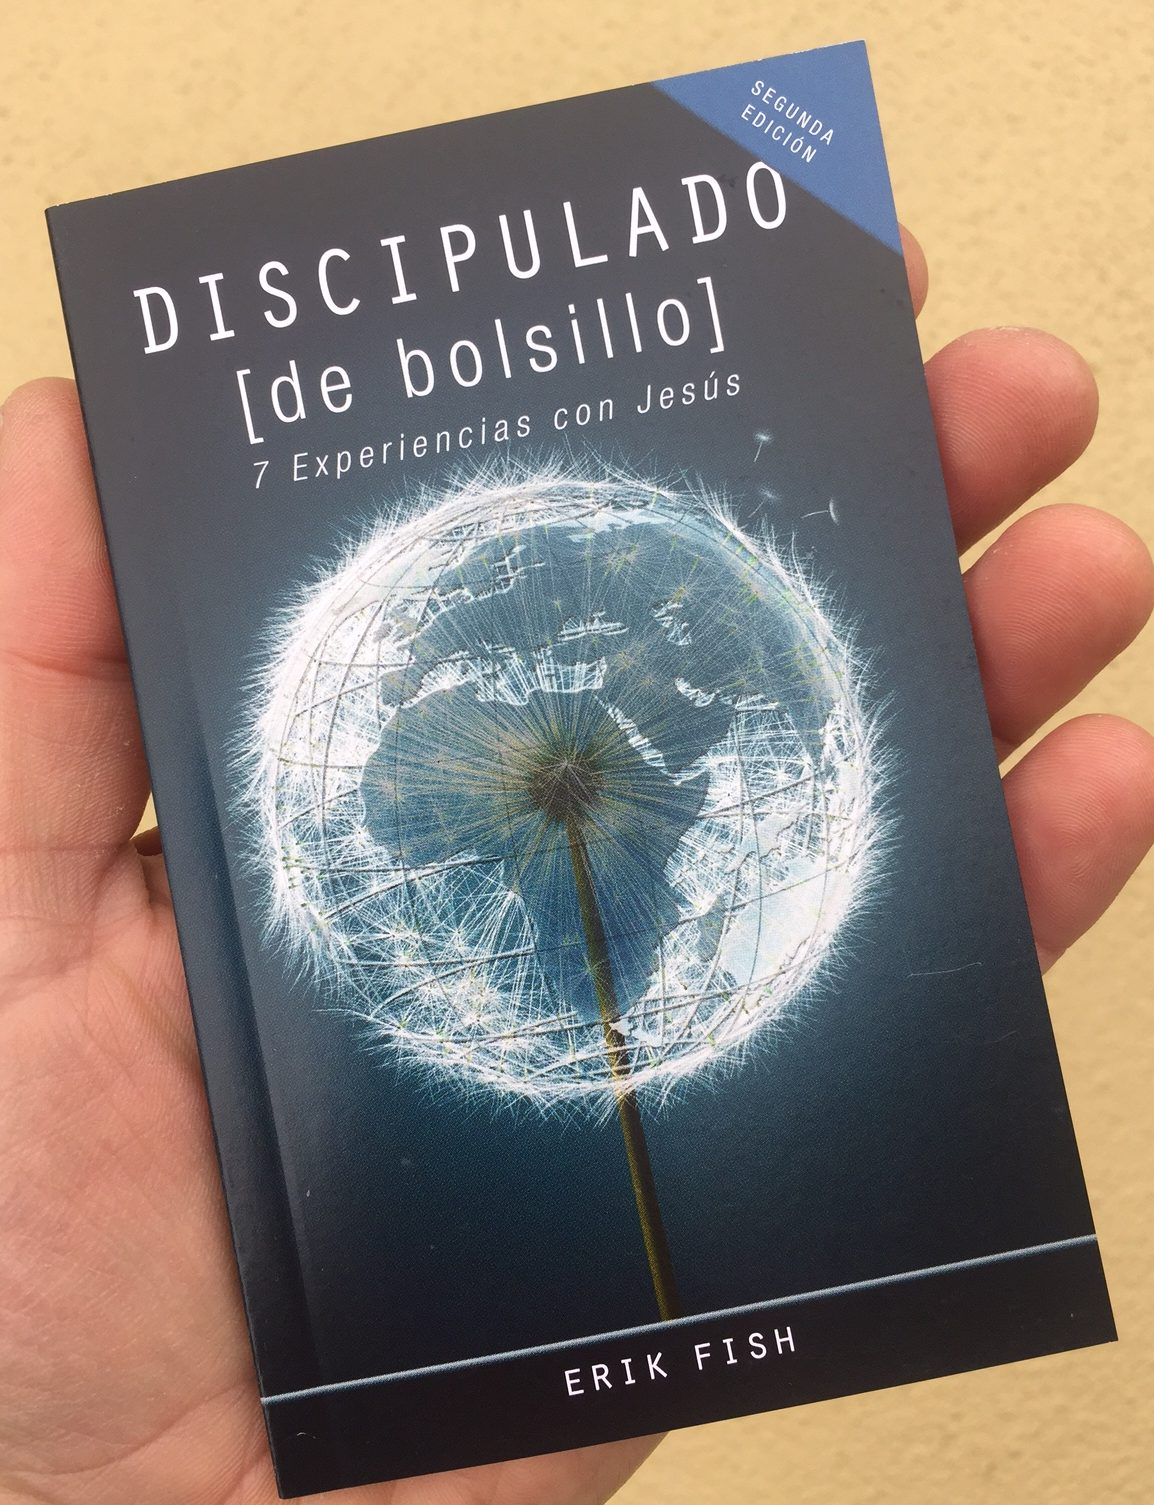 Spanish Discipleship Books!  Discipulado de Bolsillo is here!